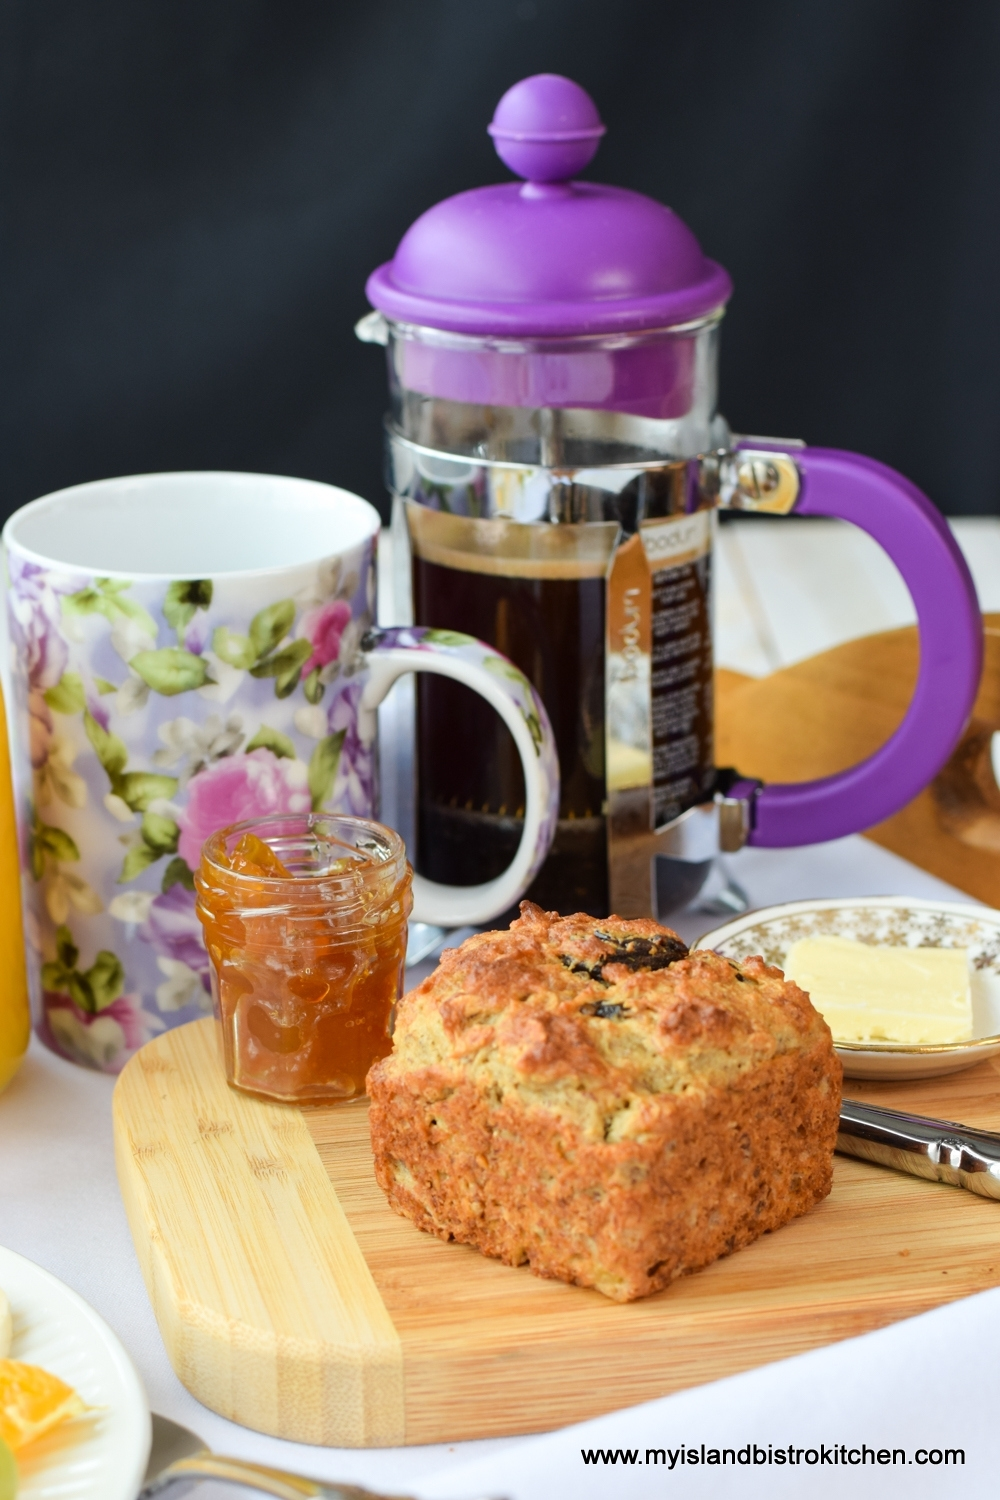 Gluten-free Banana Date Muffin on breadboard with small bottle of peach jam and pat of butter. Mauve and purple floral coffee mug and purple French press coffee maker in background